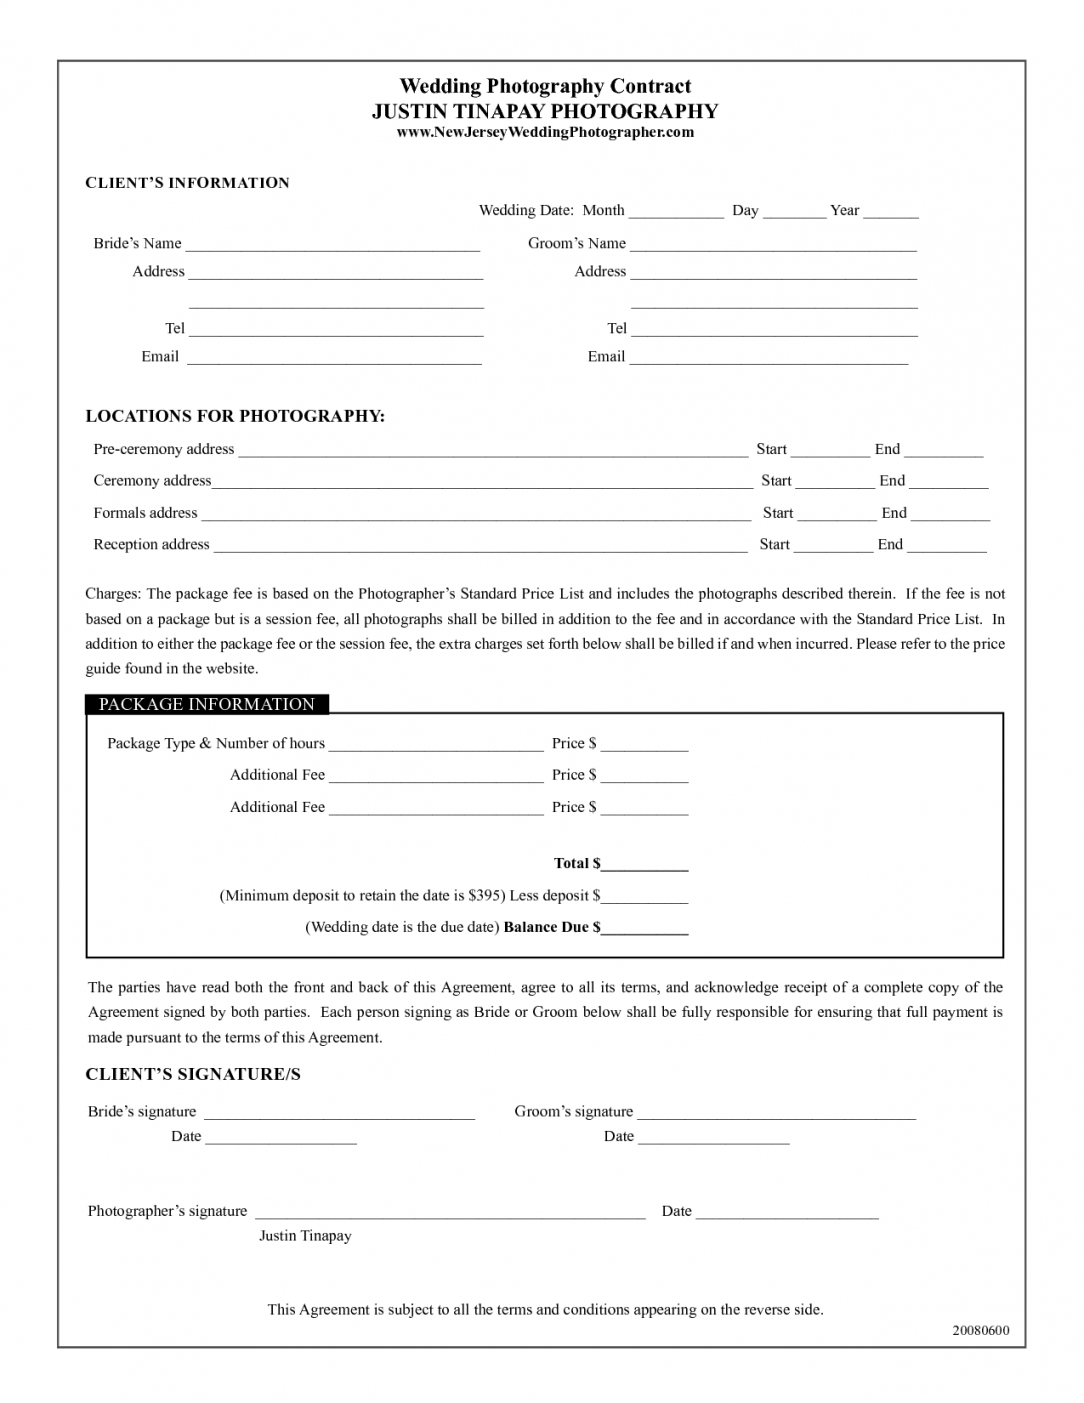 here the photography contract template  wedding photography contract justin headshot photography contract template